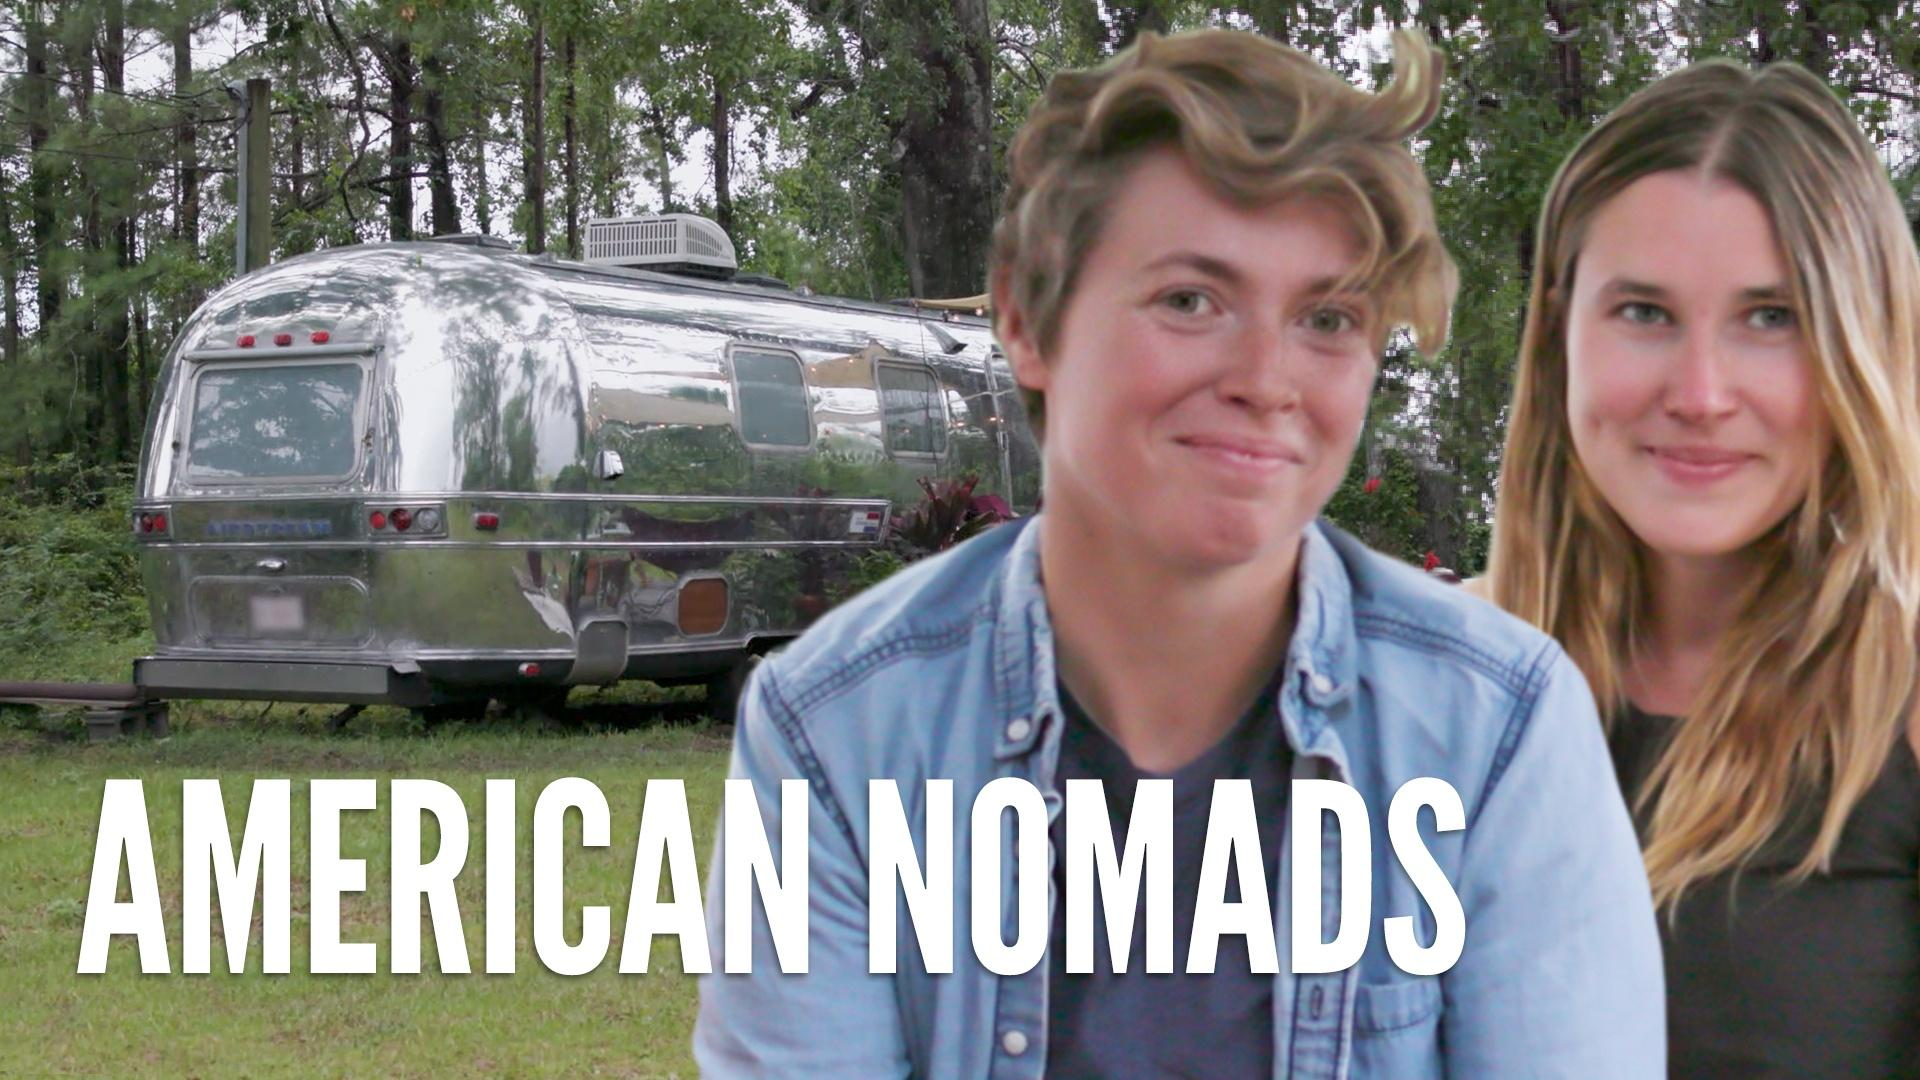 Thumbnail for: Gay Couple Try To Find Love And Acceptance On The Road | American Nomads, Ep. 3